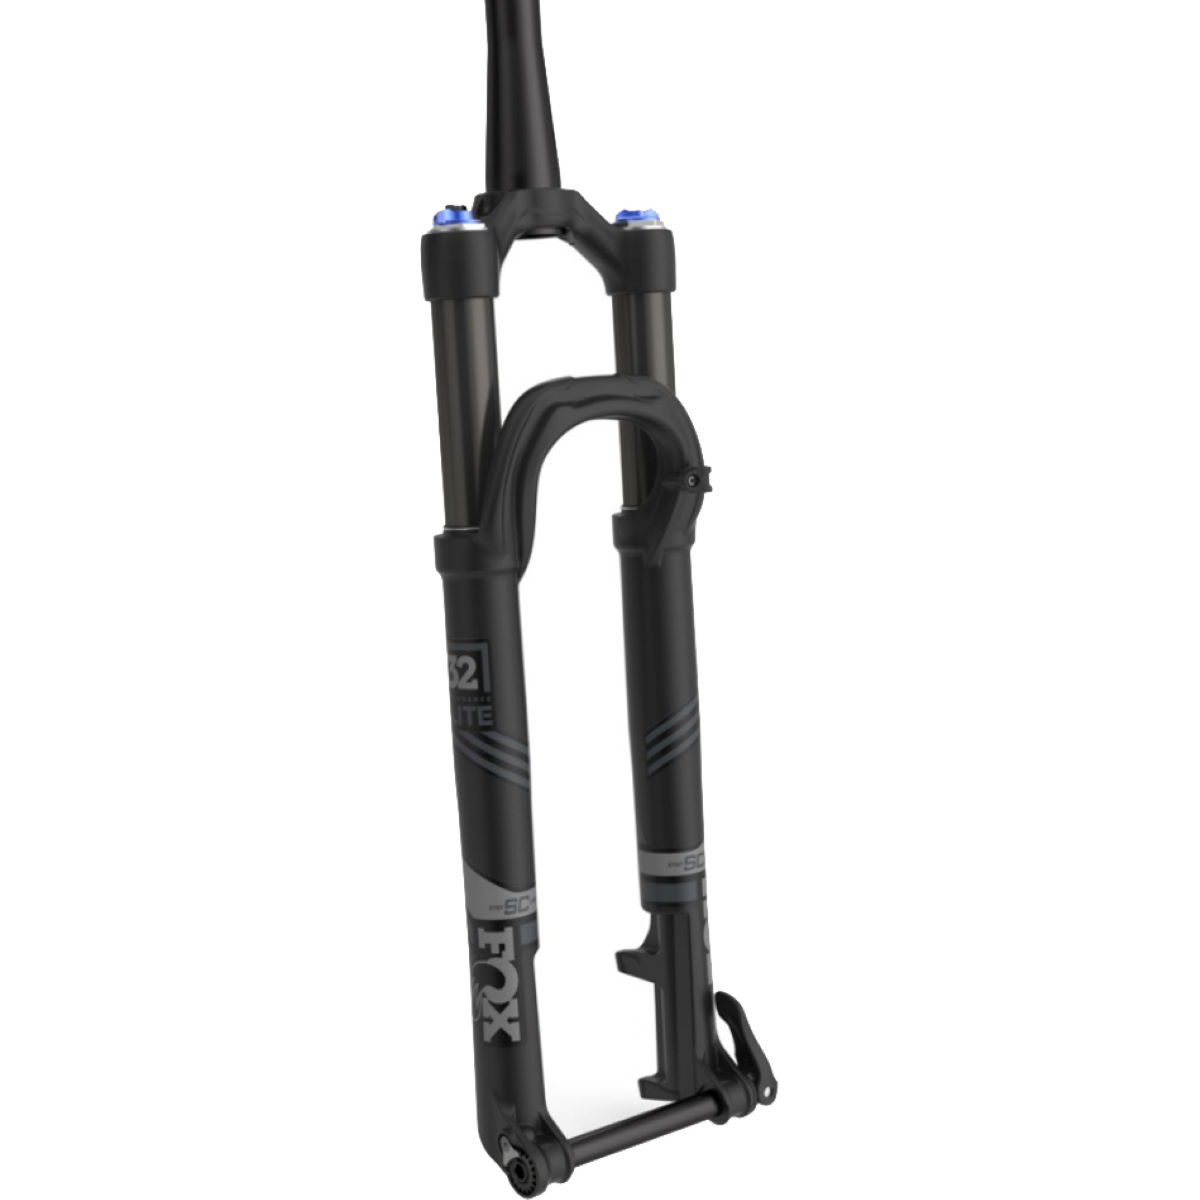 Fox Suspension 32 Float Performance Elite Forks - 15mm - Horquillas de suspensión